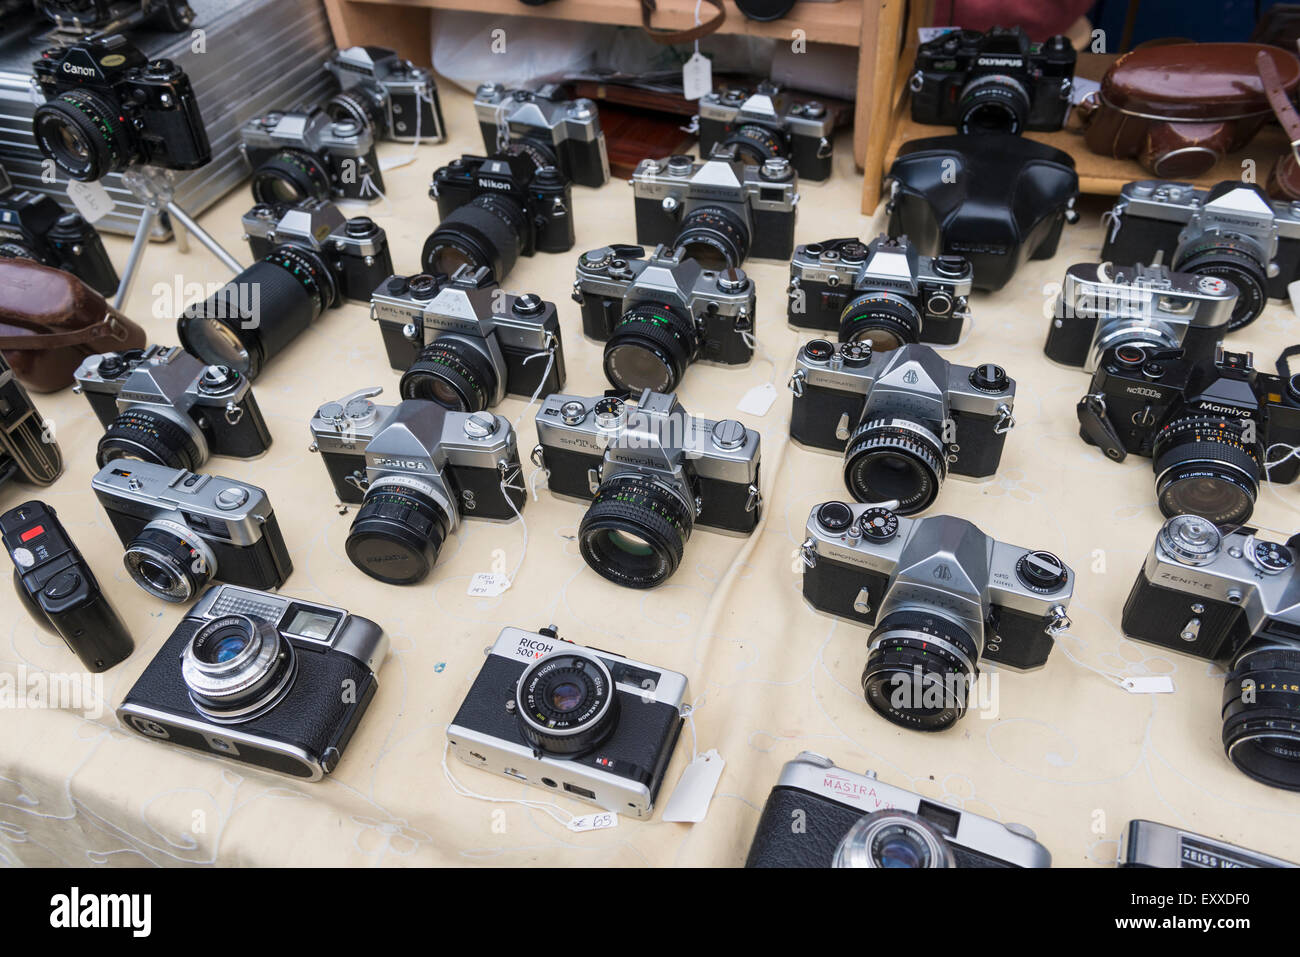 Old vintage cameras on display in Portobello Market, London, England, UK - Stock Image